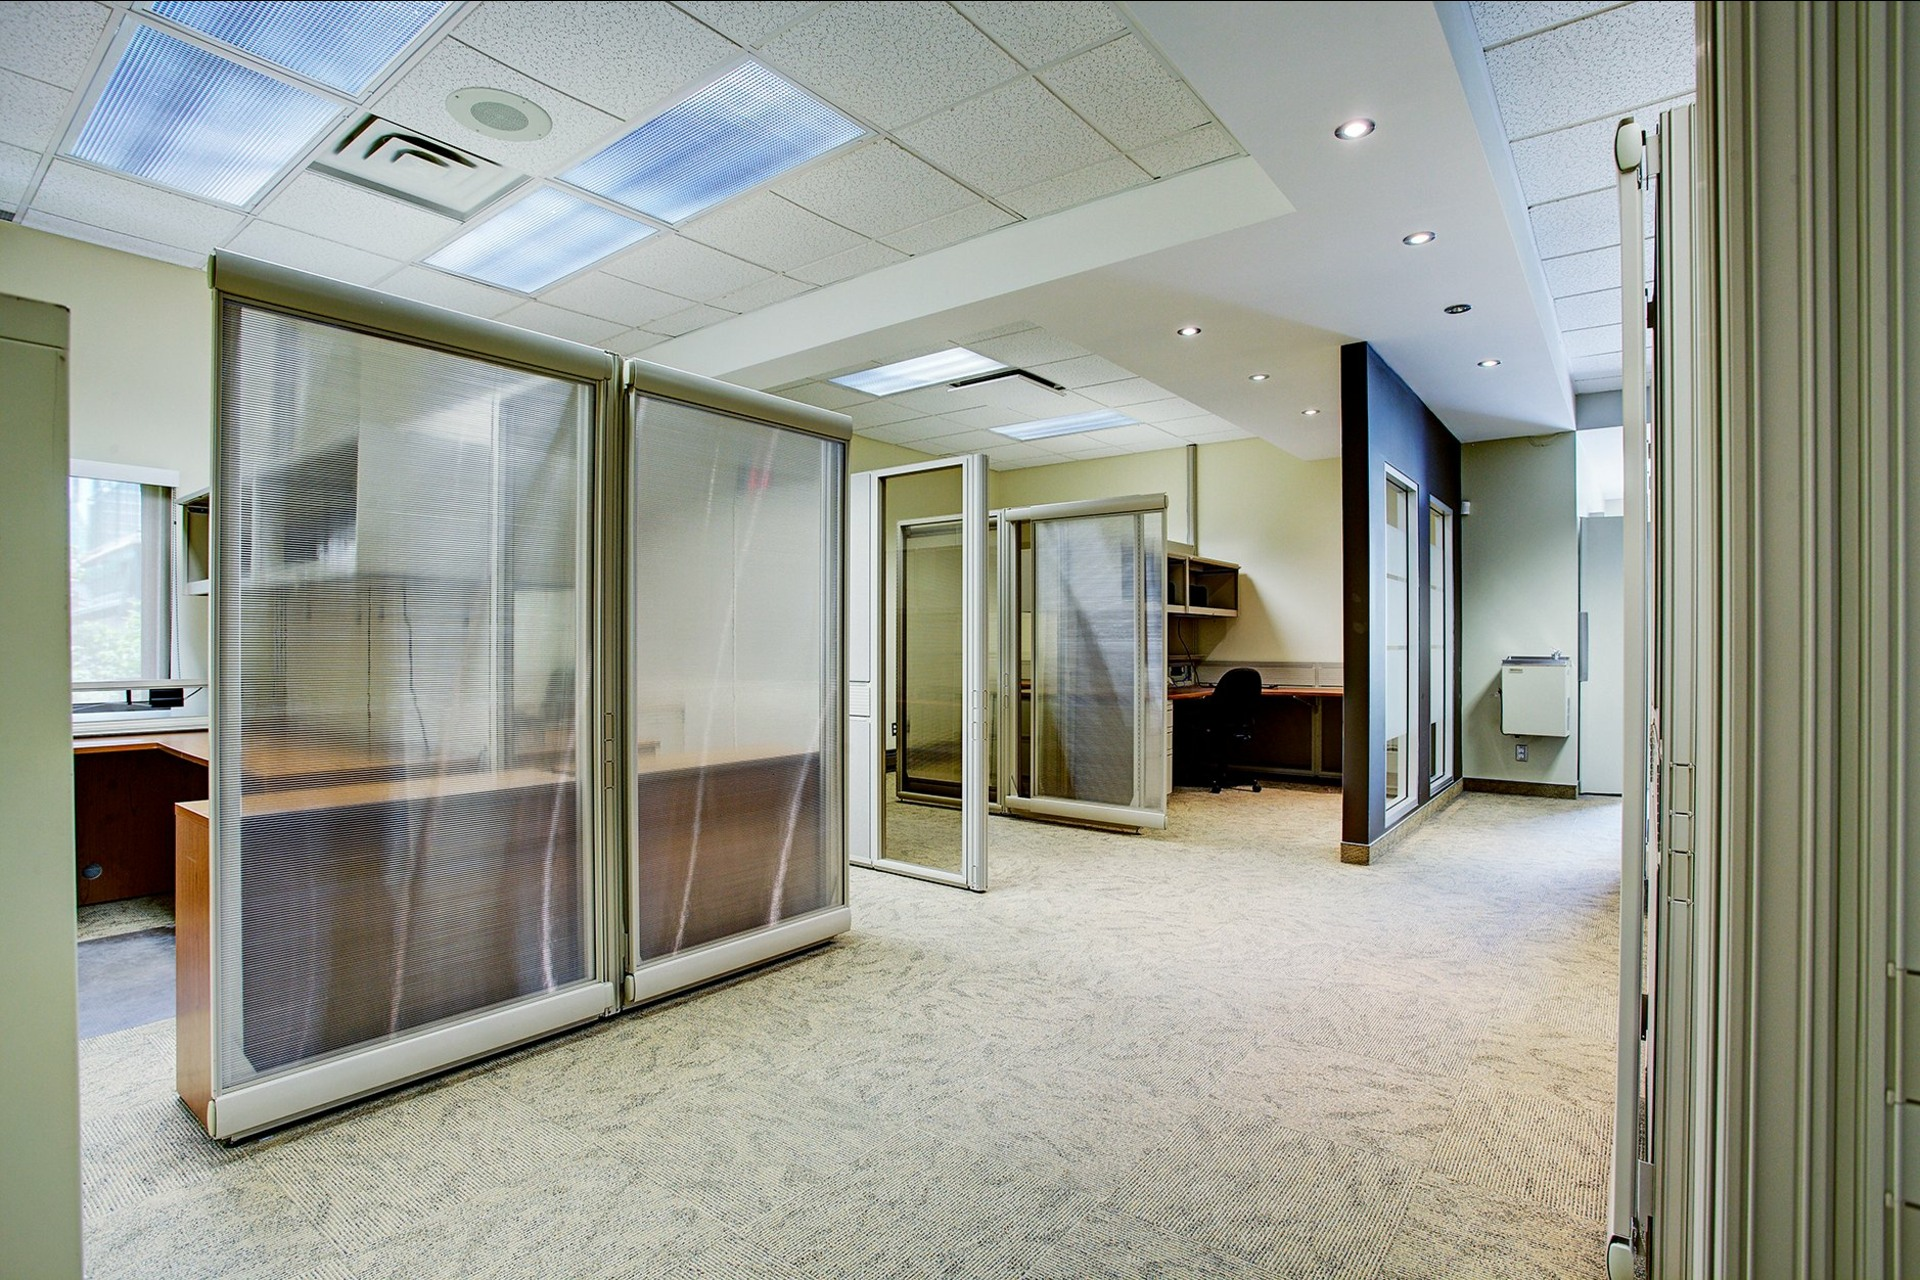 image 17 - Office For rent Rigaud